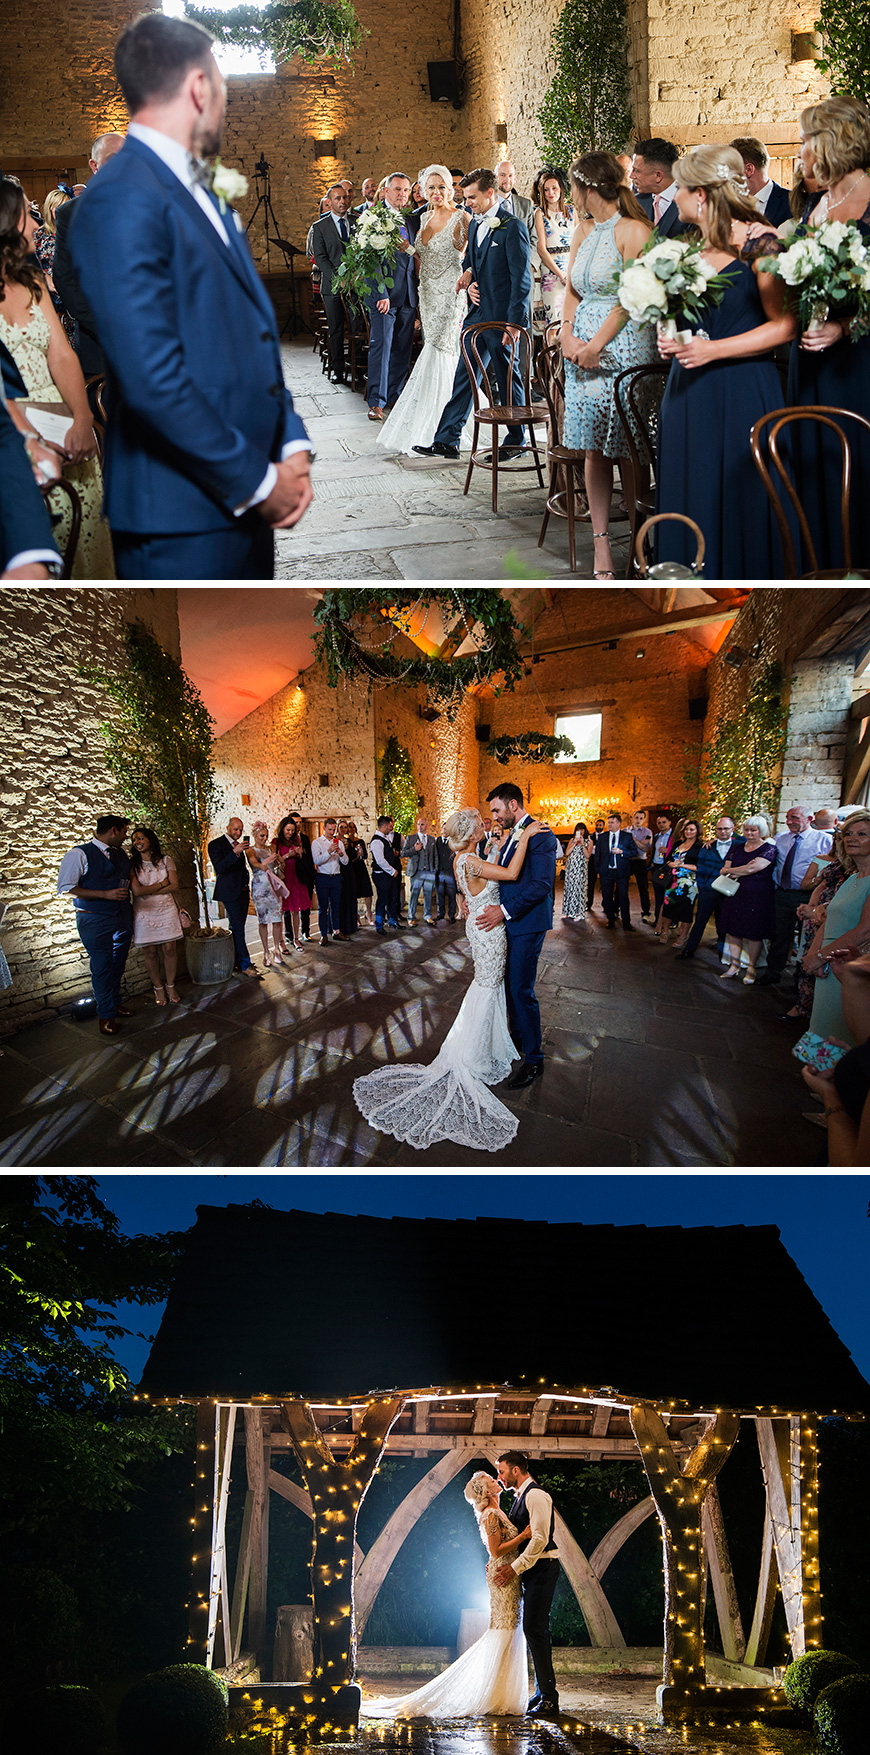 Real Wedding - Sky and Lee's Vintage Wedding At Cripps Barn - Moments | CHWV